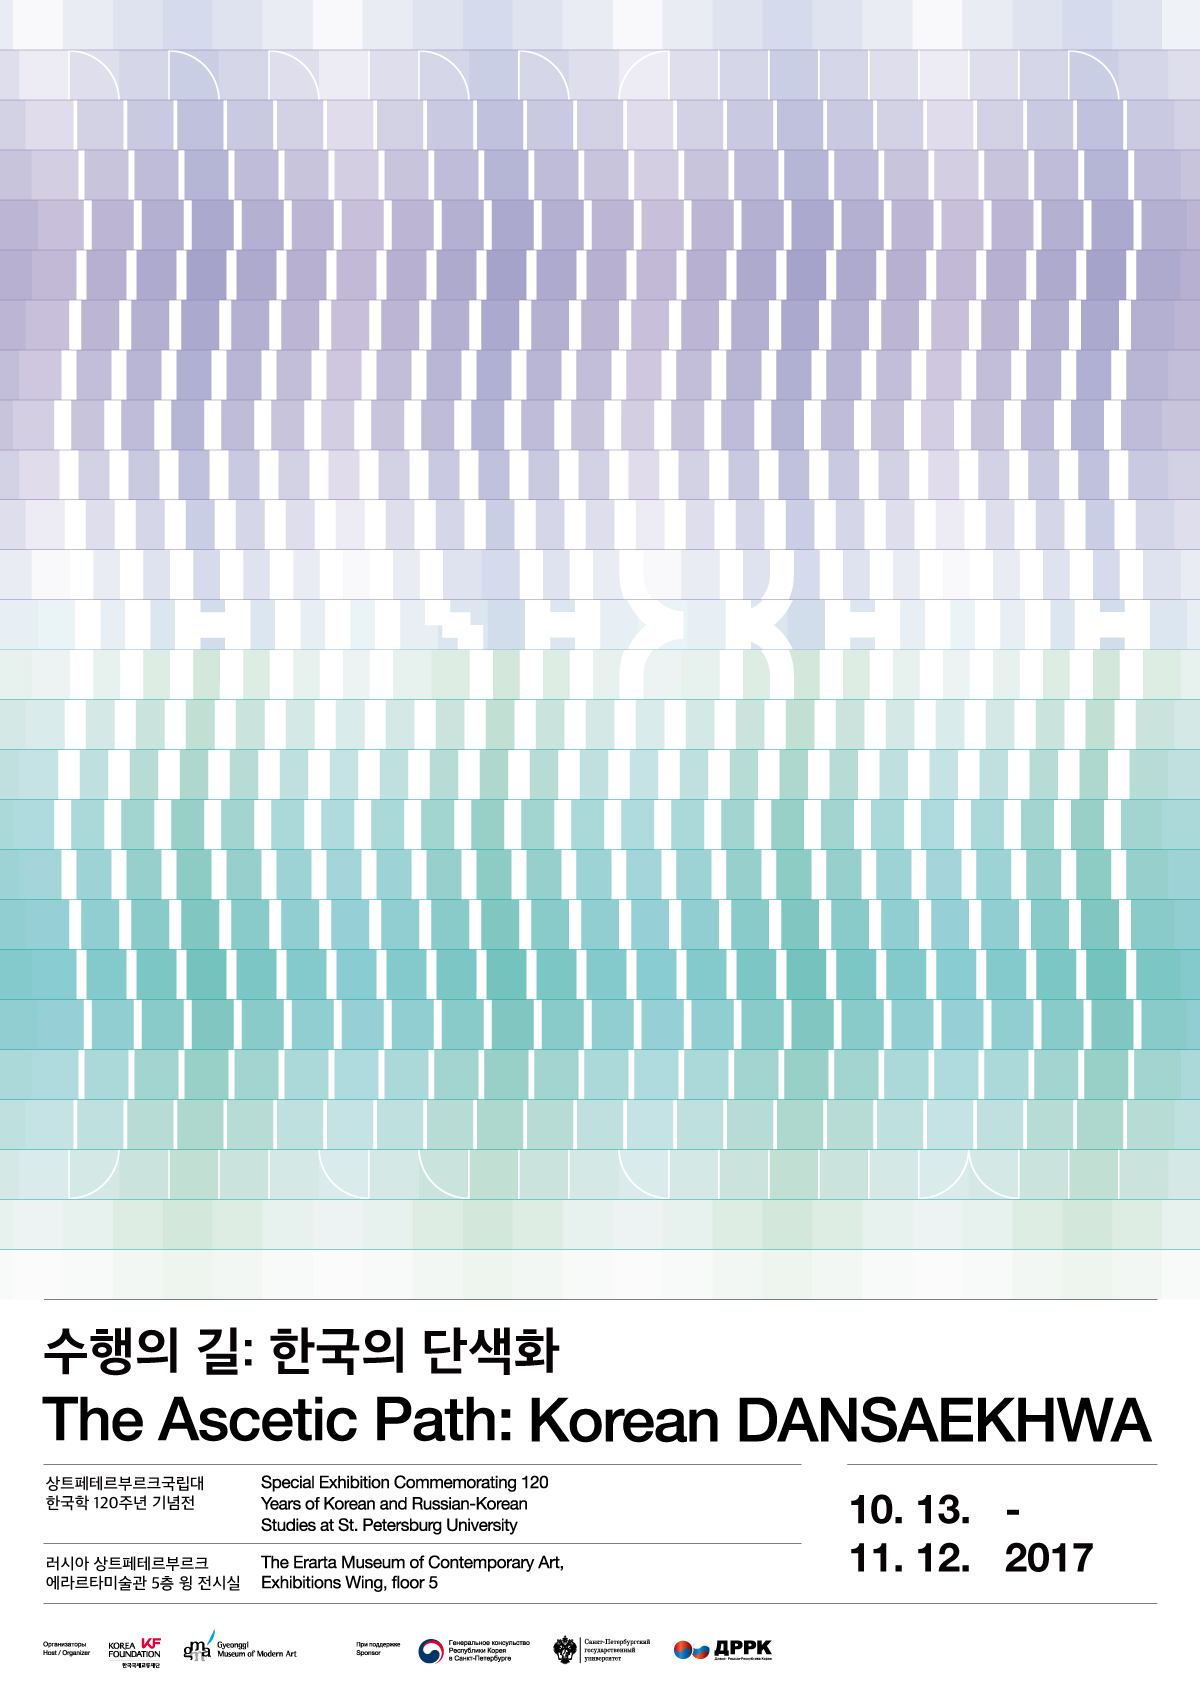 The Ascetic Path: Korean DANSAEKHWA